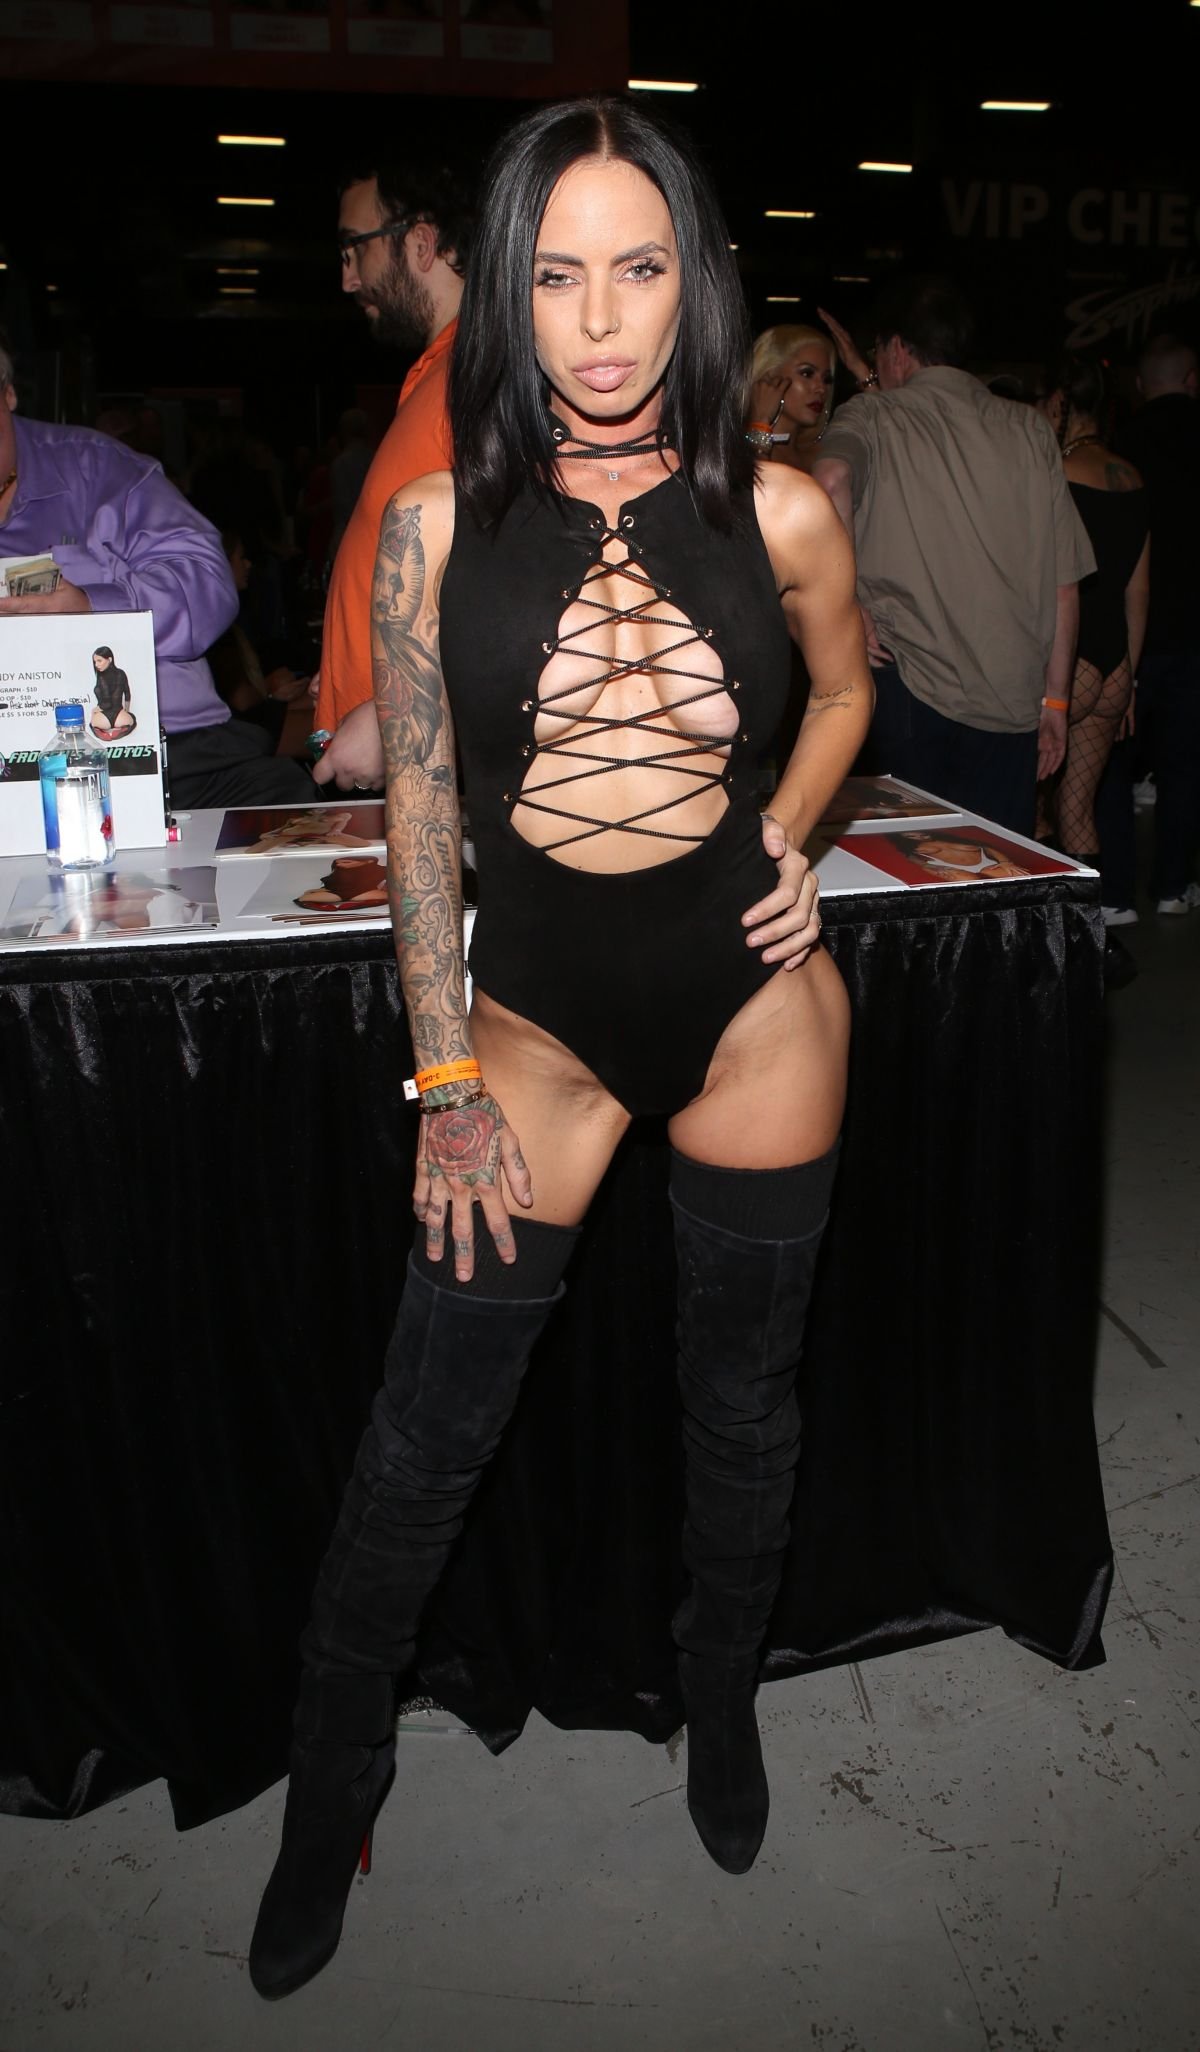 BRANDY ANISTON at Exxxotica Expo 2017 in New Jersey 11/03 ...